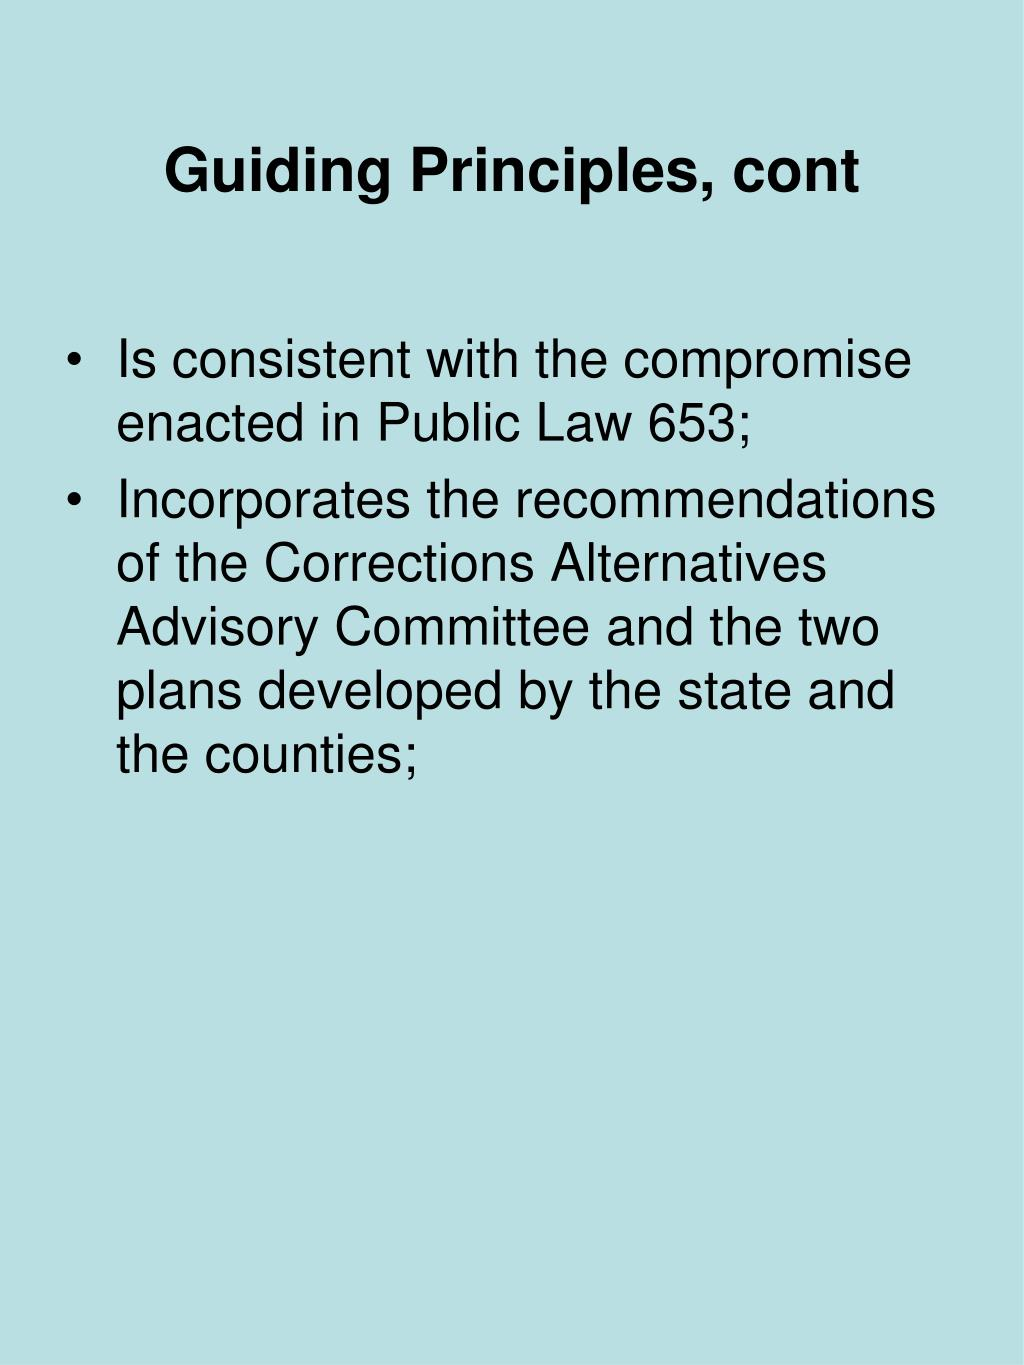 Guiding Principles, cont